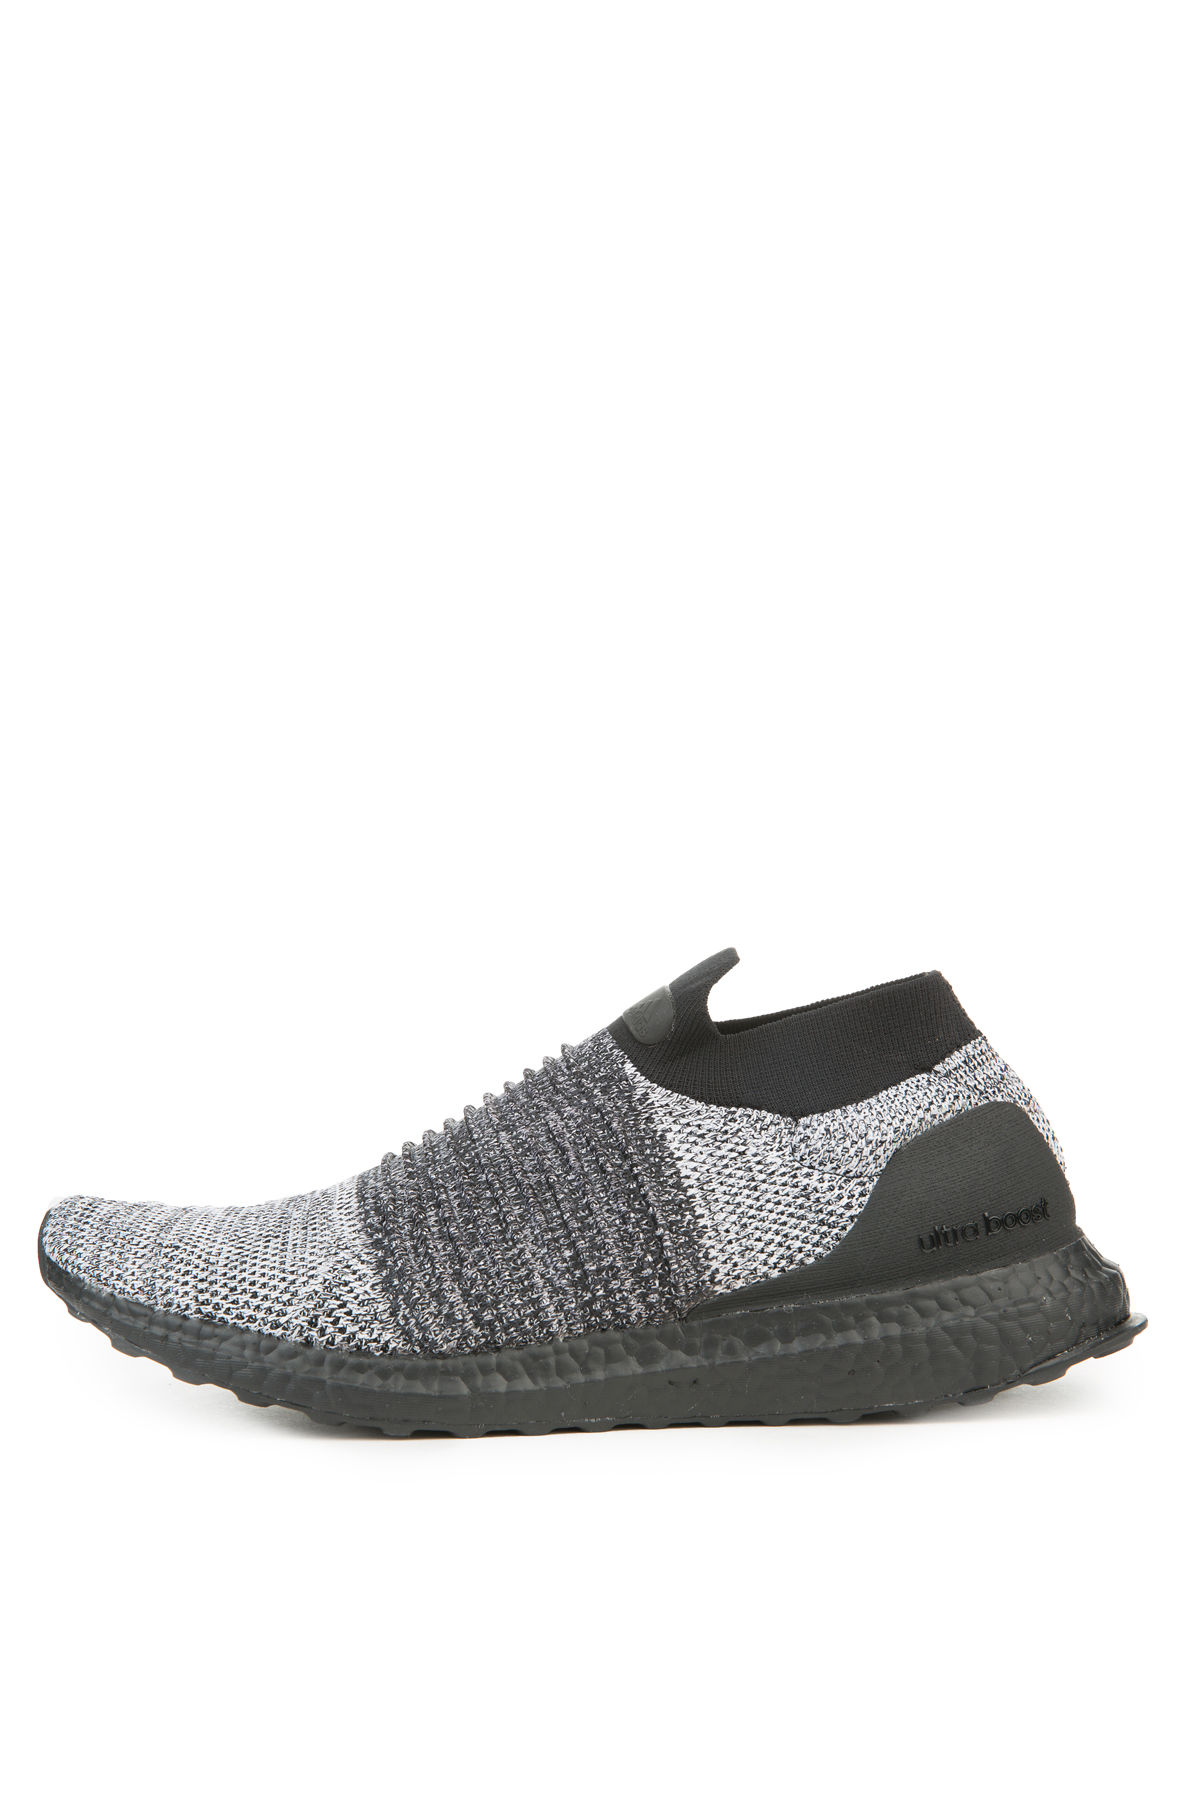 Image of The Men's Ultraboost Laceless LTD in Core Black and White